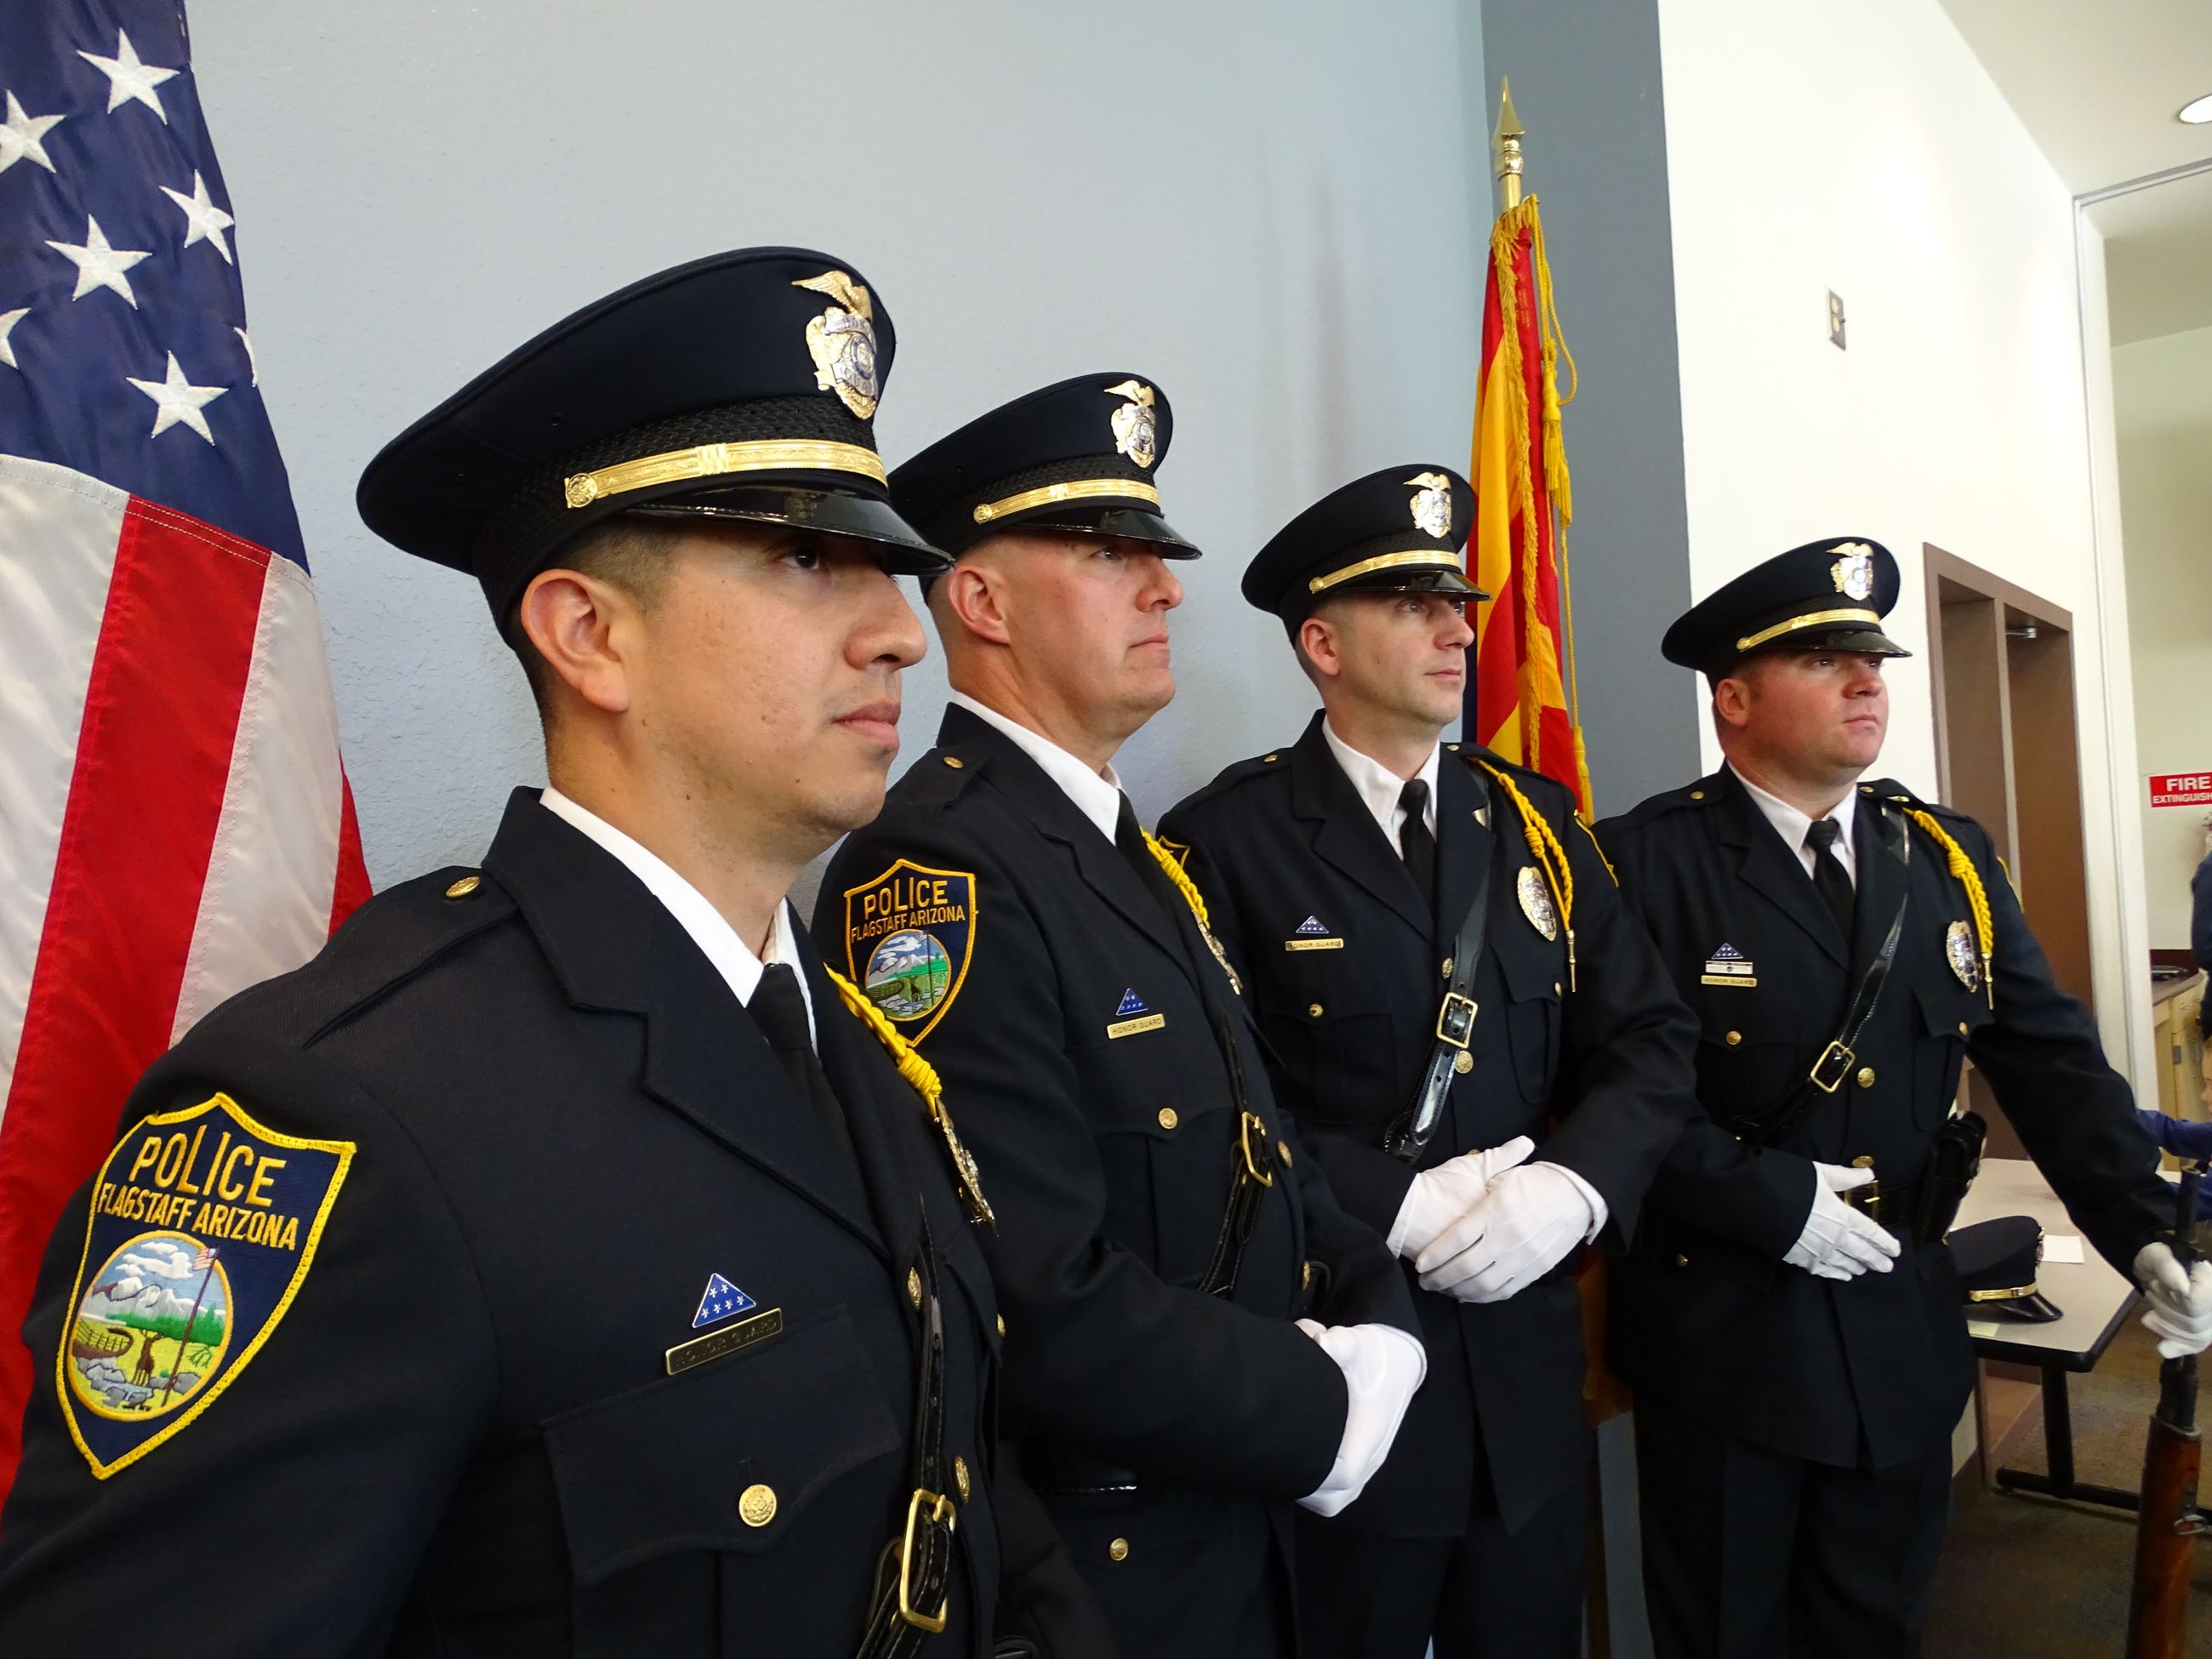 4 Police Officers in Full Uniform